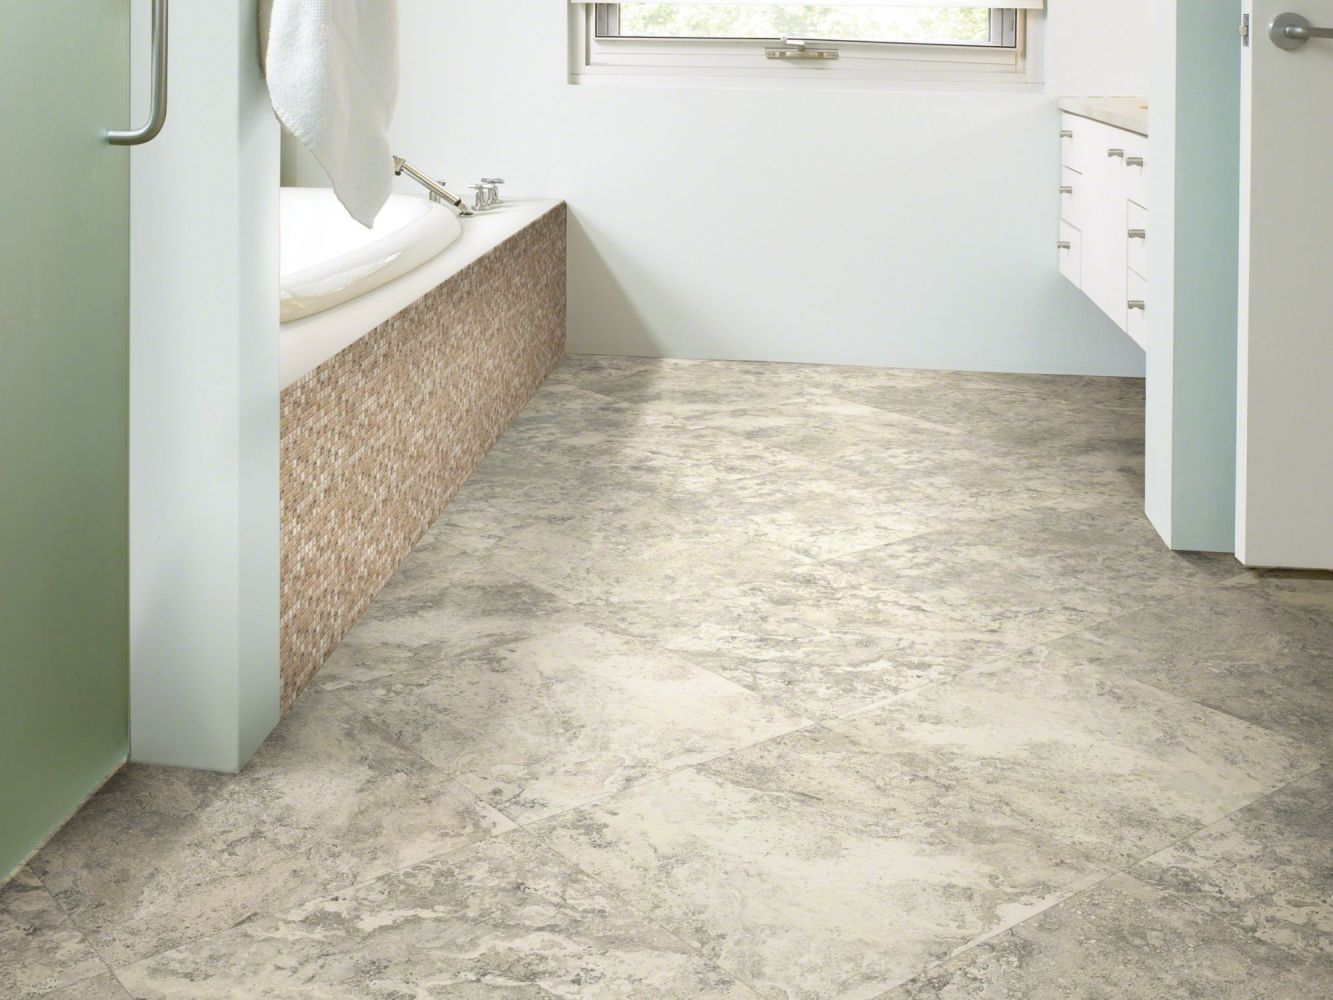 Shaw Floors Vinyl Residential World's Fair Tile Sydney 00541_0428V